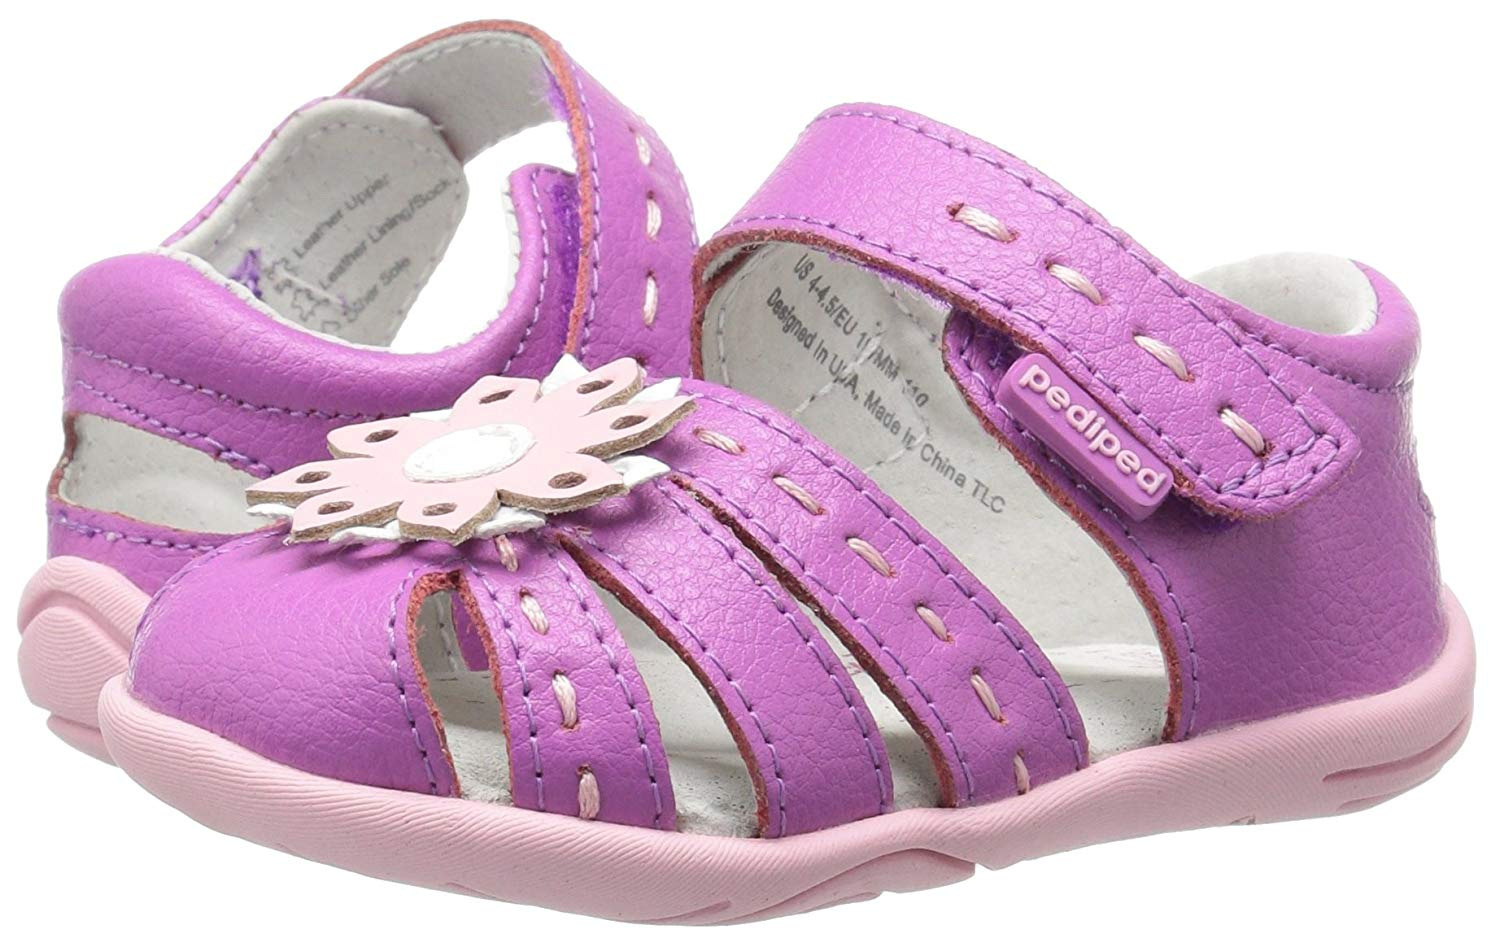 3b6be5dc3dd Kids pediped Girls Sabine Ballet Flats